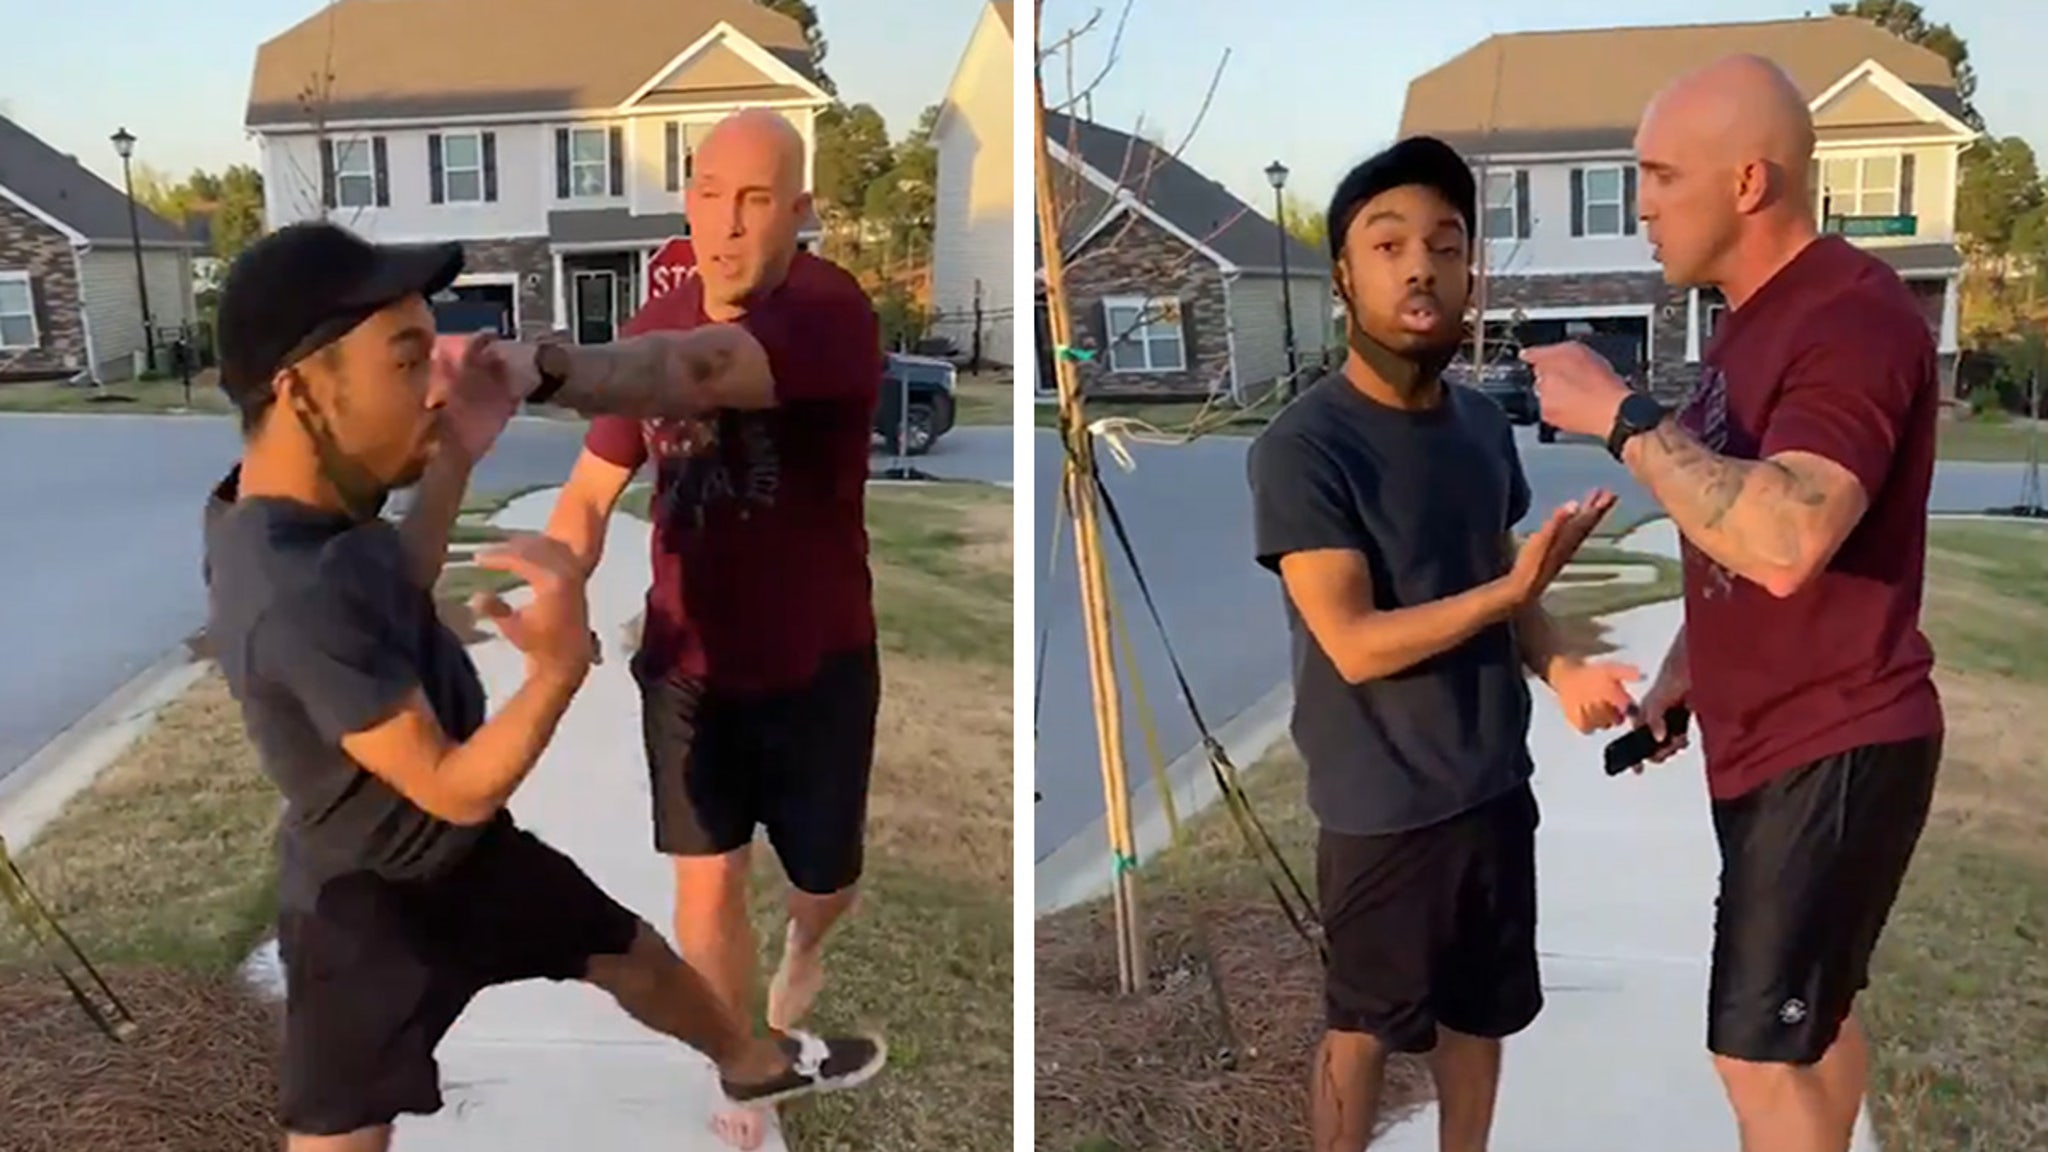 Army Sgt. Suspended for Confronting Black Man Walking Through Neighborhood